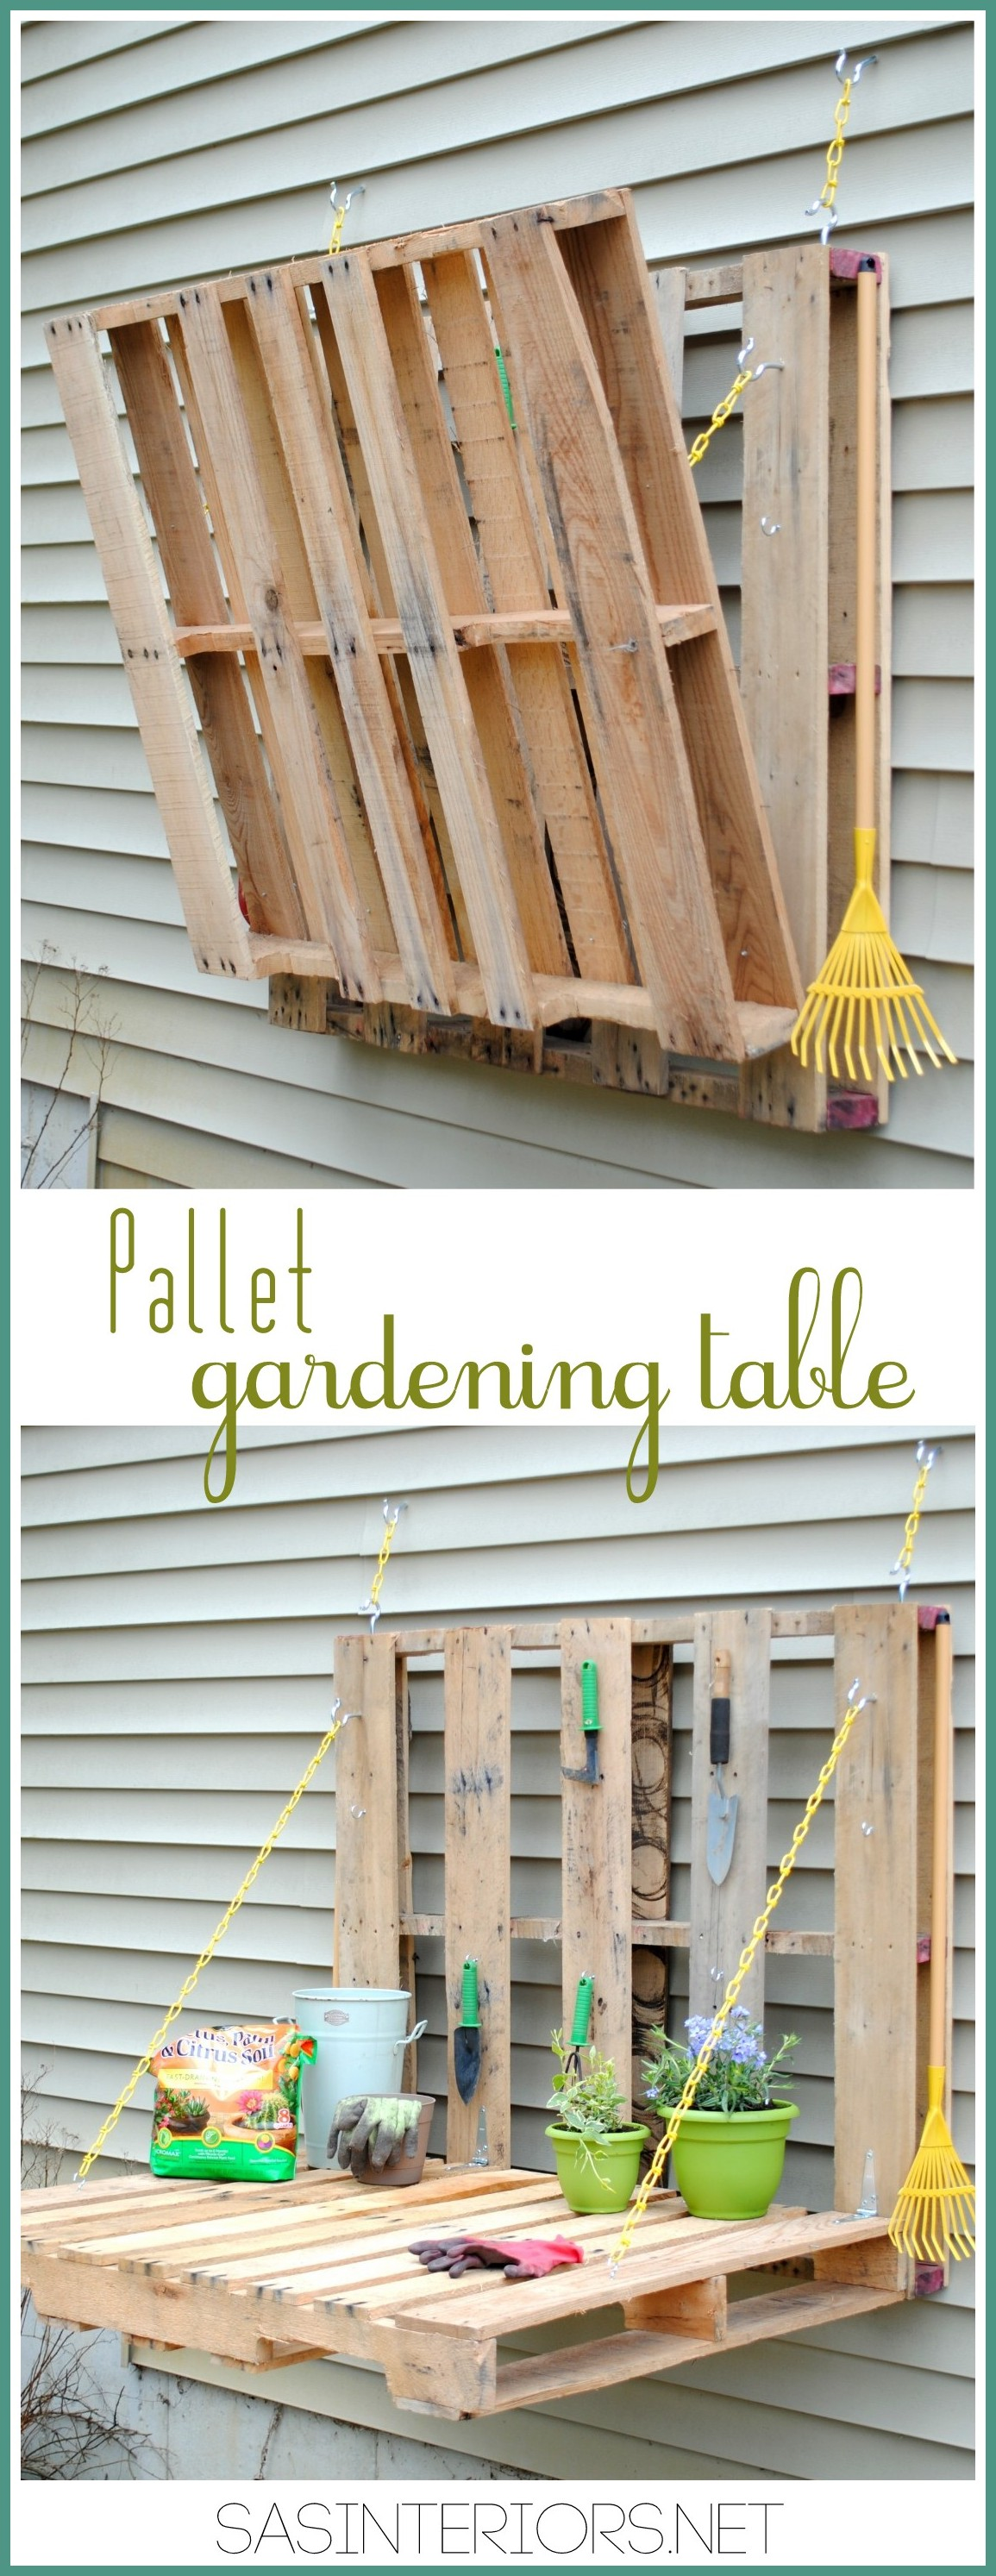 pallet furniture designs. VIEW IN GALLERY DIY Pallet Gardening Table Furniture Designs